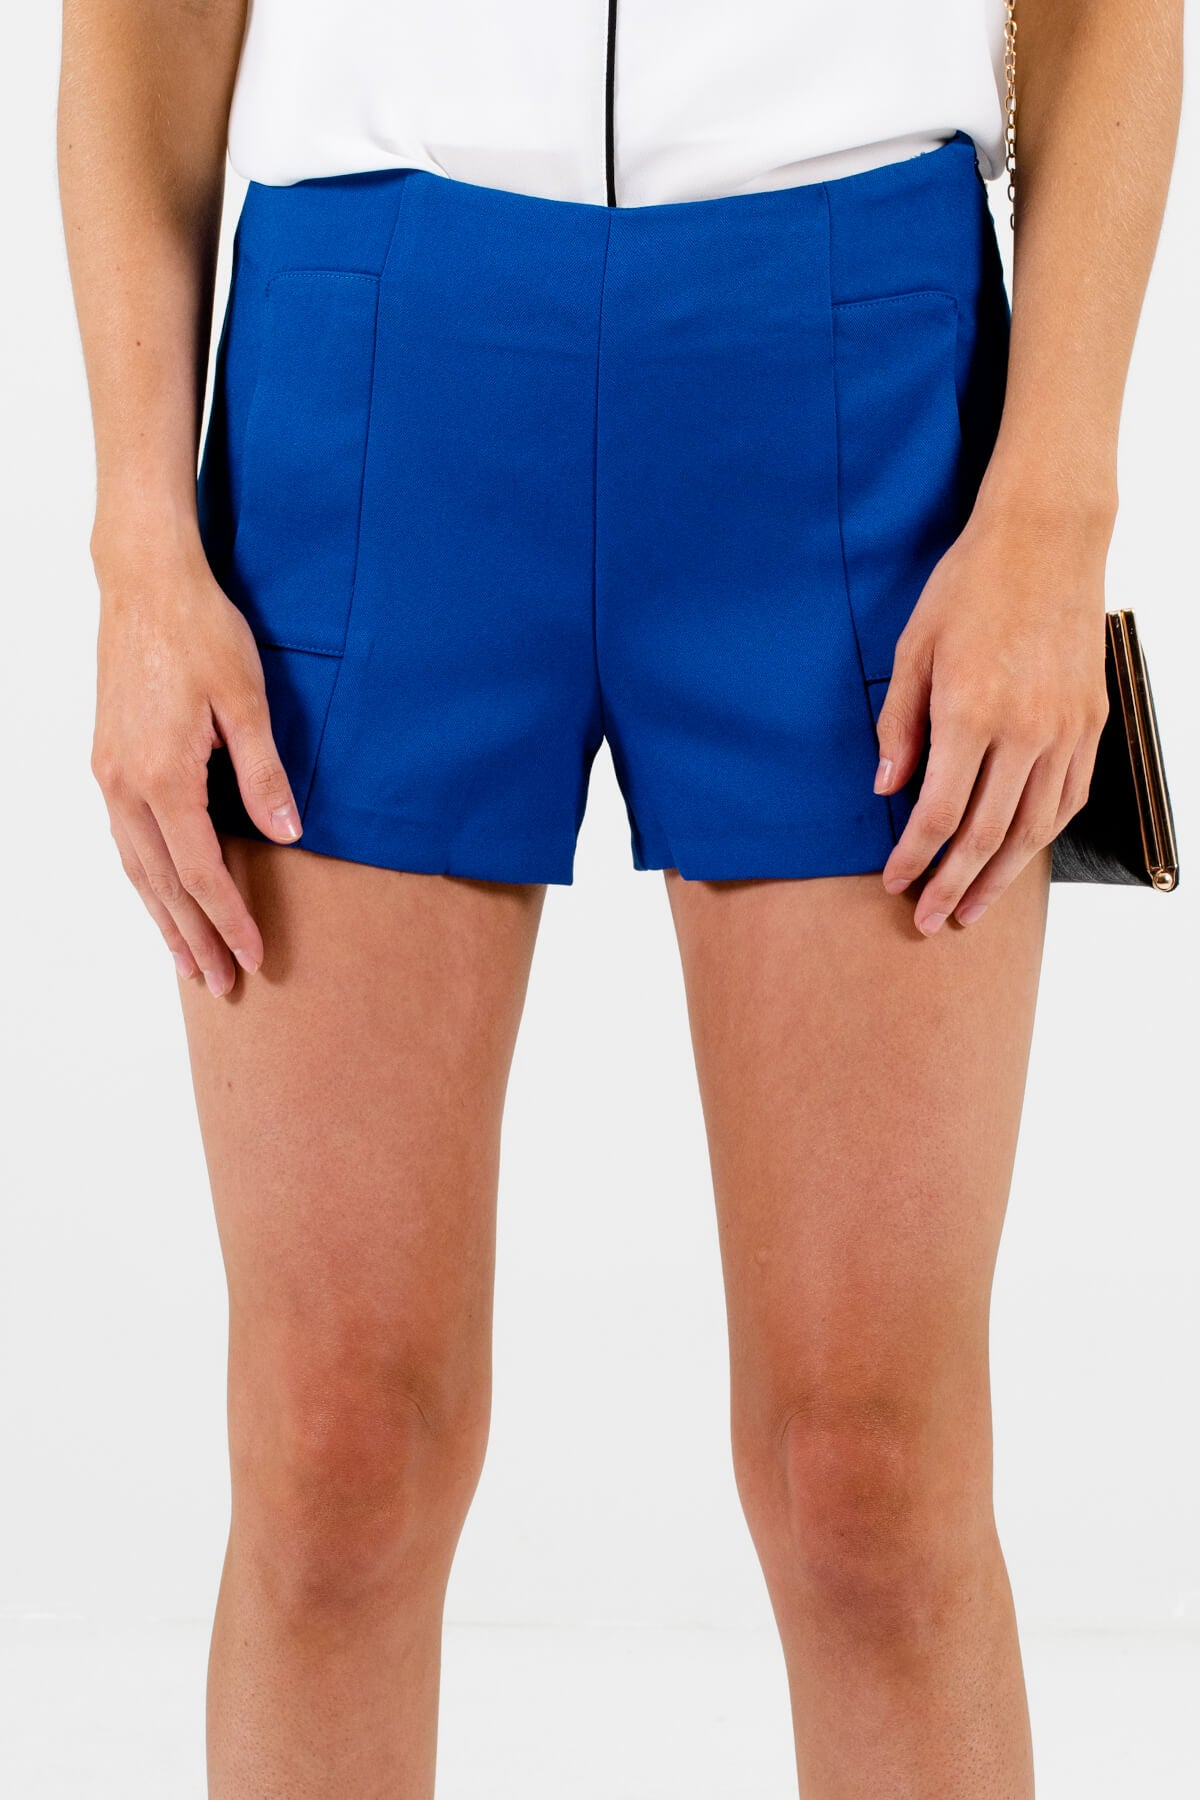 Blue Side Zipper Boutique Shorts for Women